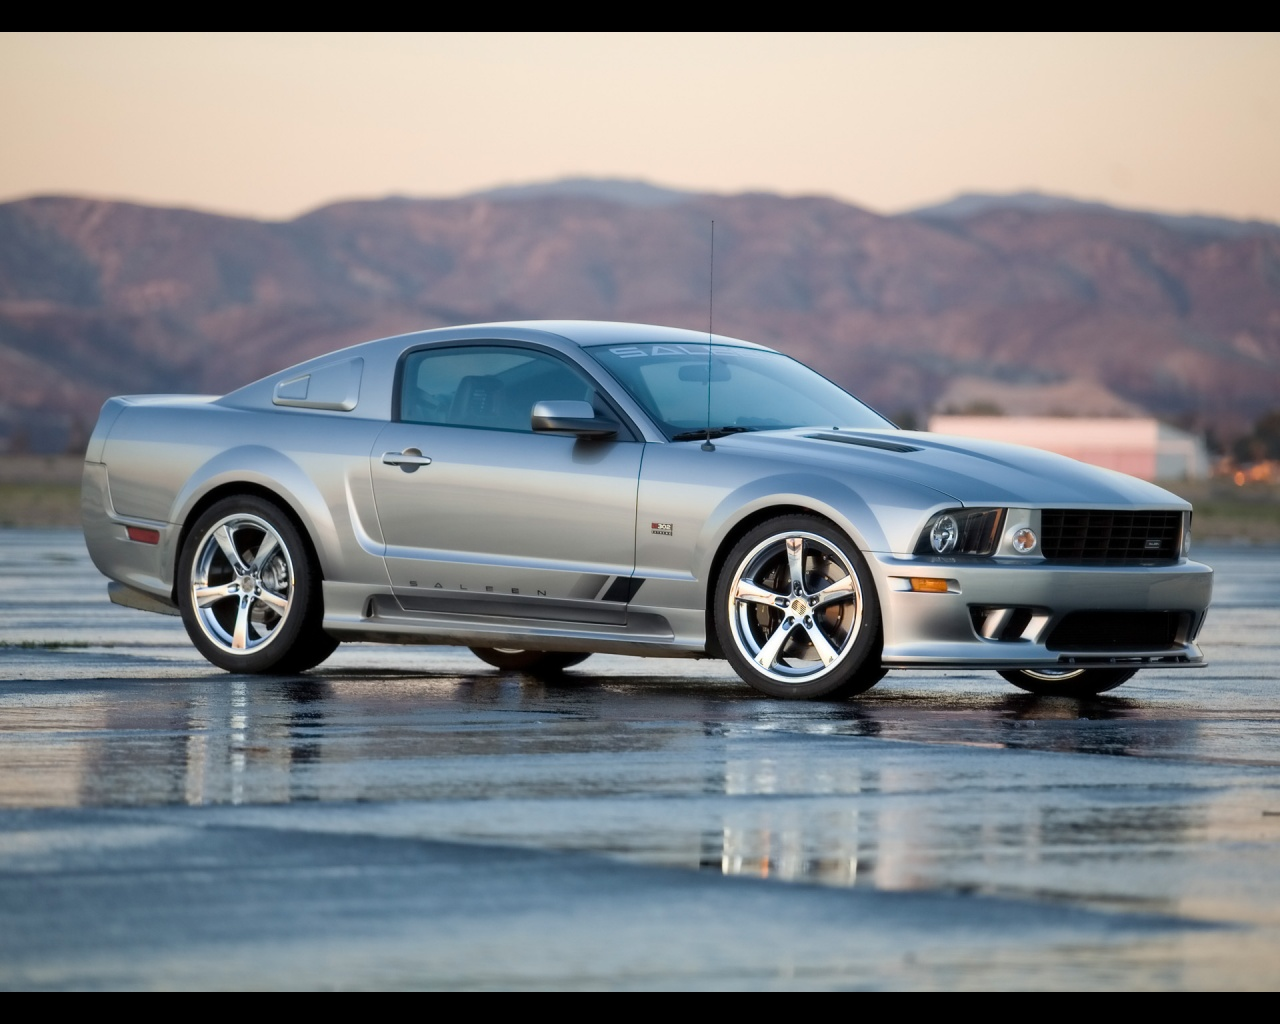 saleen mustang s302 extreme 2008 wallpapers ford mustang ford mustang bullitt ford. Black Bedroom Furniture Sets. Home Design Ideas